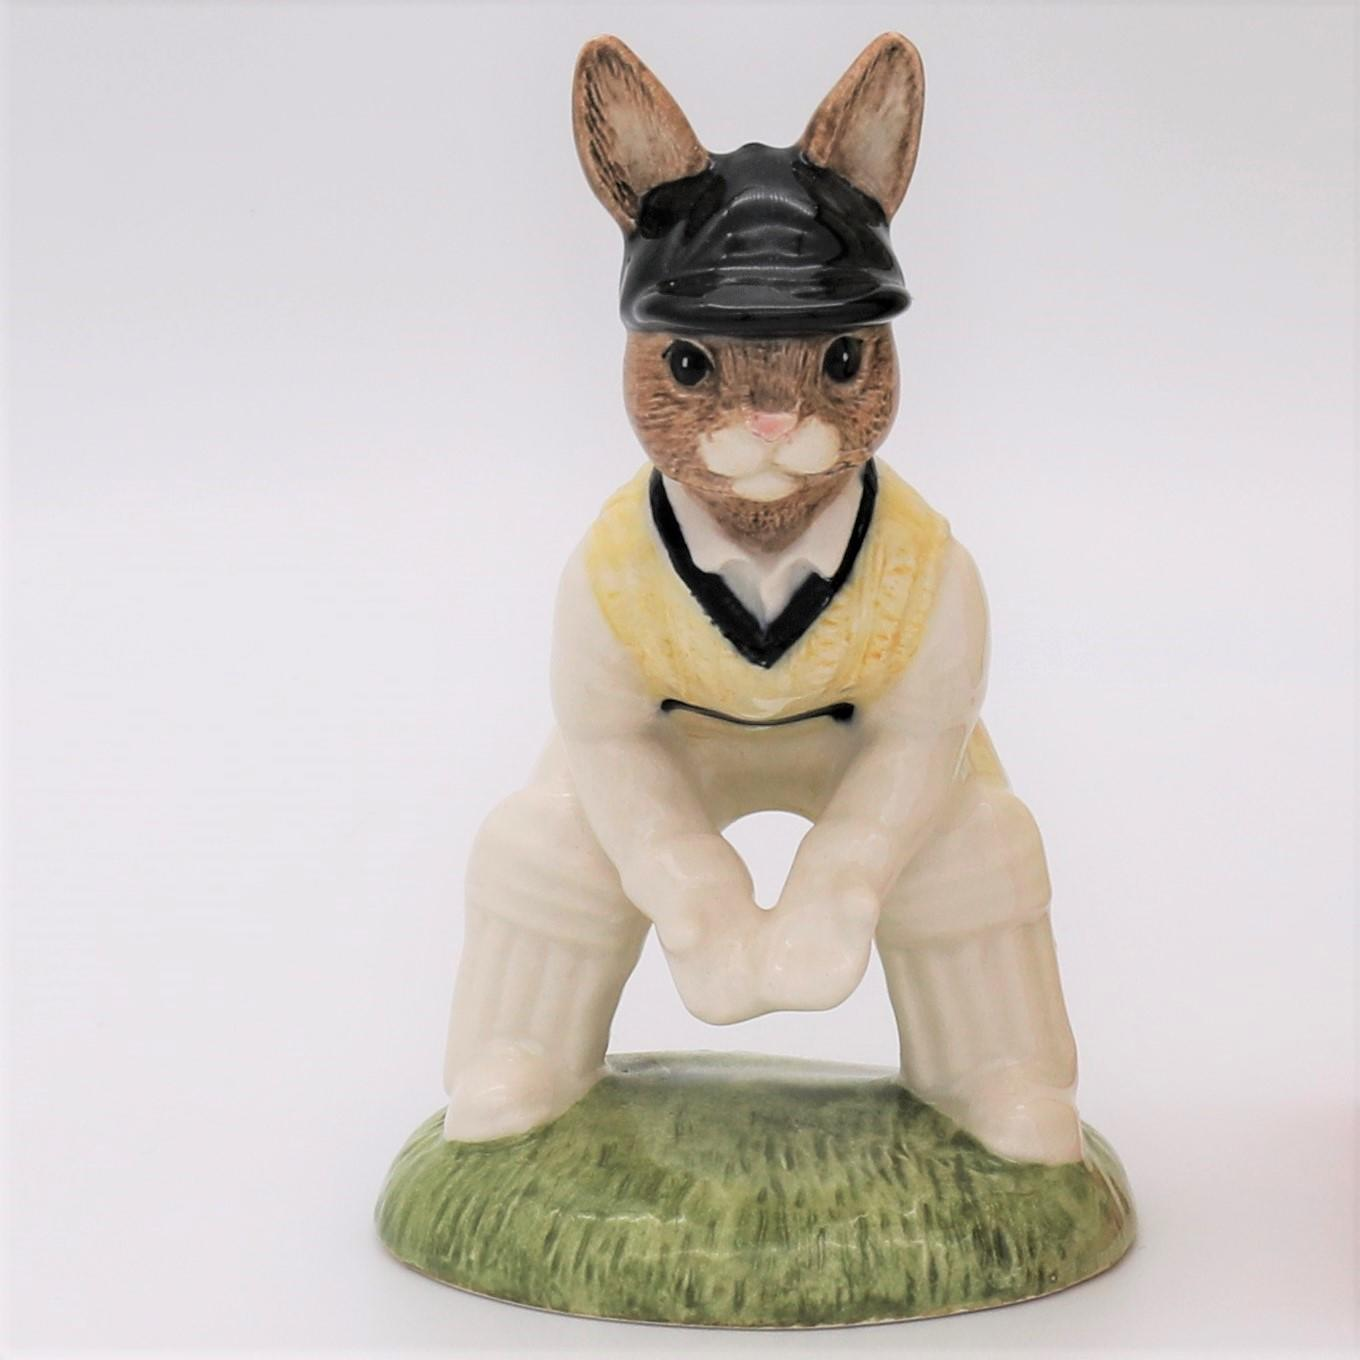 Royal Doulton Bunnykins cricket figure - DB150 Wicket Keeper front